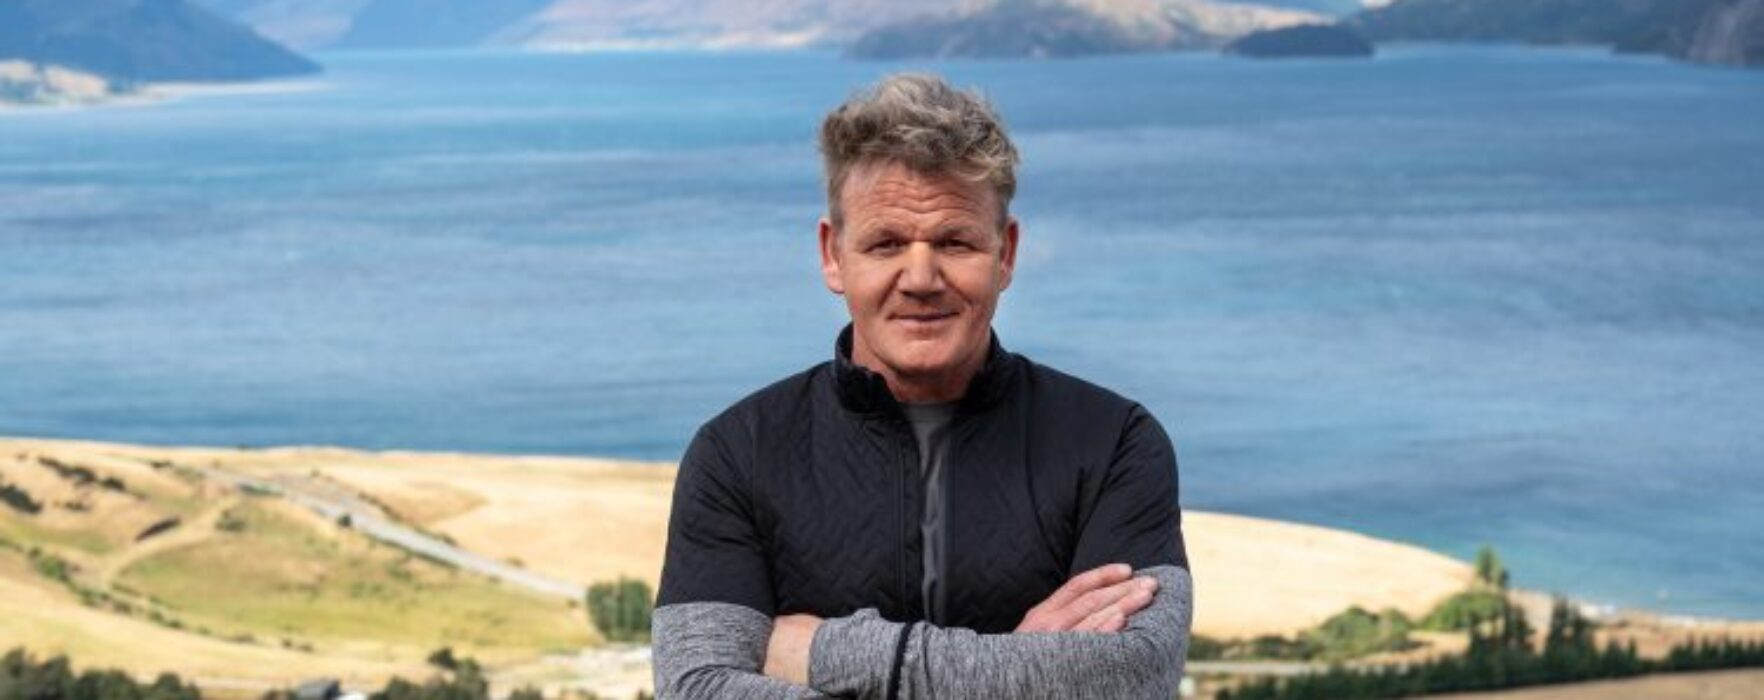 WATCH: Gordon Ramsay lose a head to head battle with a sea snail